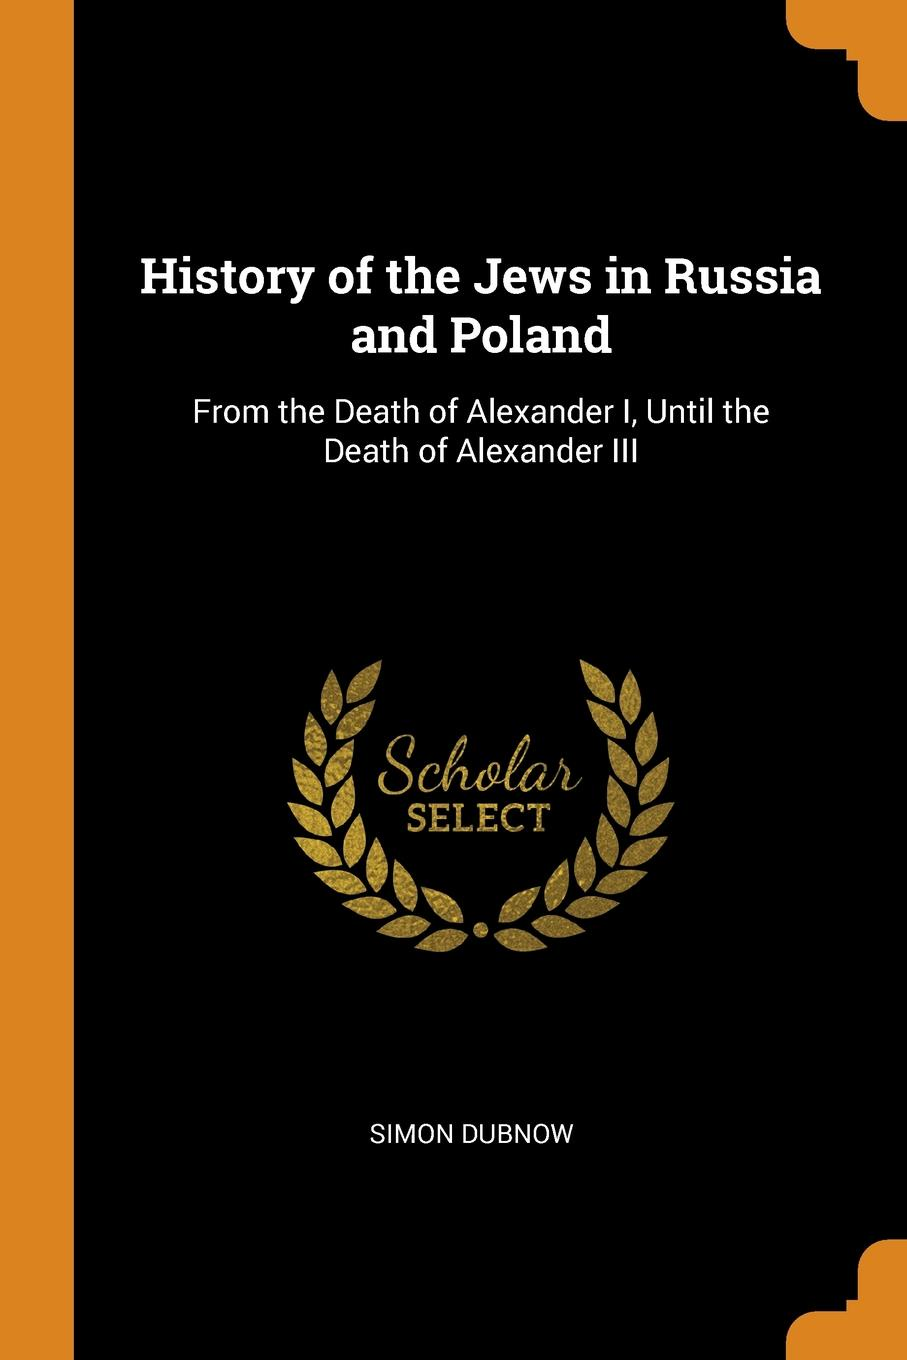 Simon Dubnow History of the Jews in Russia and Poland. From the Death of Alexander I, Until the Death of Alexander III dubnow simon history of the jews in russia and poland volume 1 of 3 from the beginning until the death of alexander i 1825